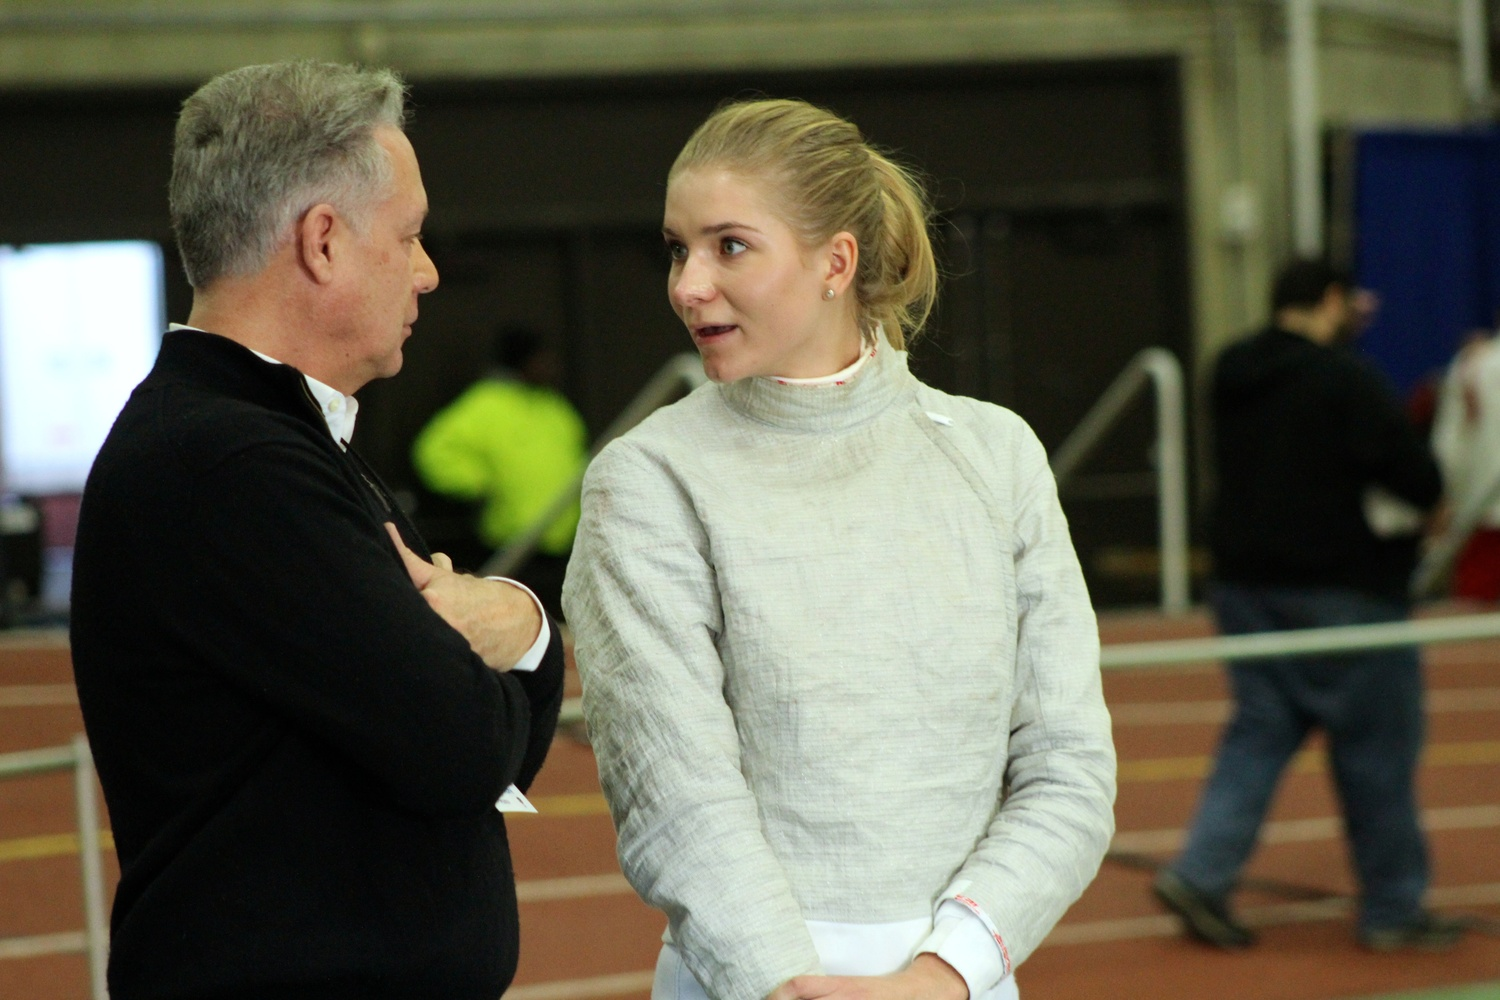 Junior saber fencer Adrienne Jarocki chats with Harvard coach Peter Brand in between bouts at the FIE Sabre Grand Prix. Jarocki claimed her second NCAA title in her collegiate career.